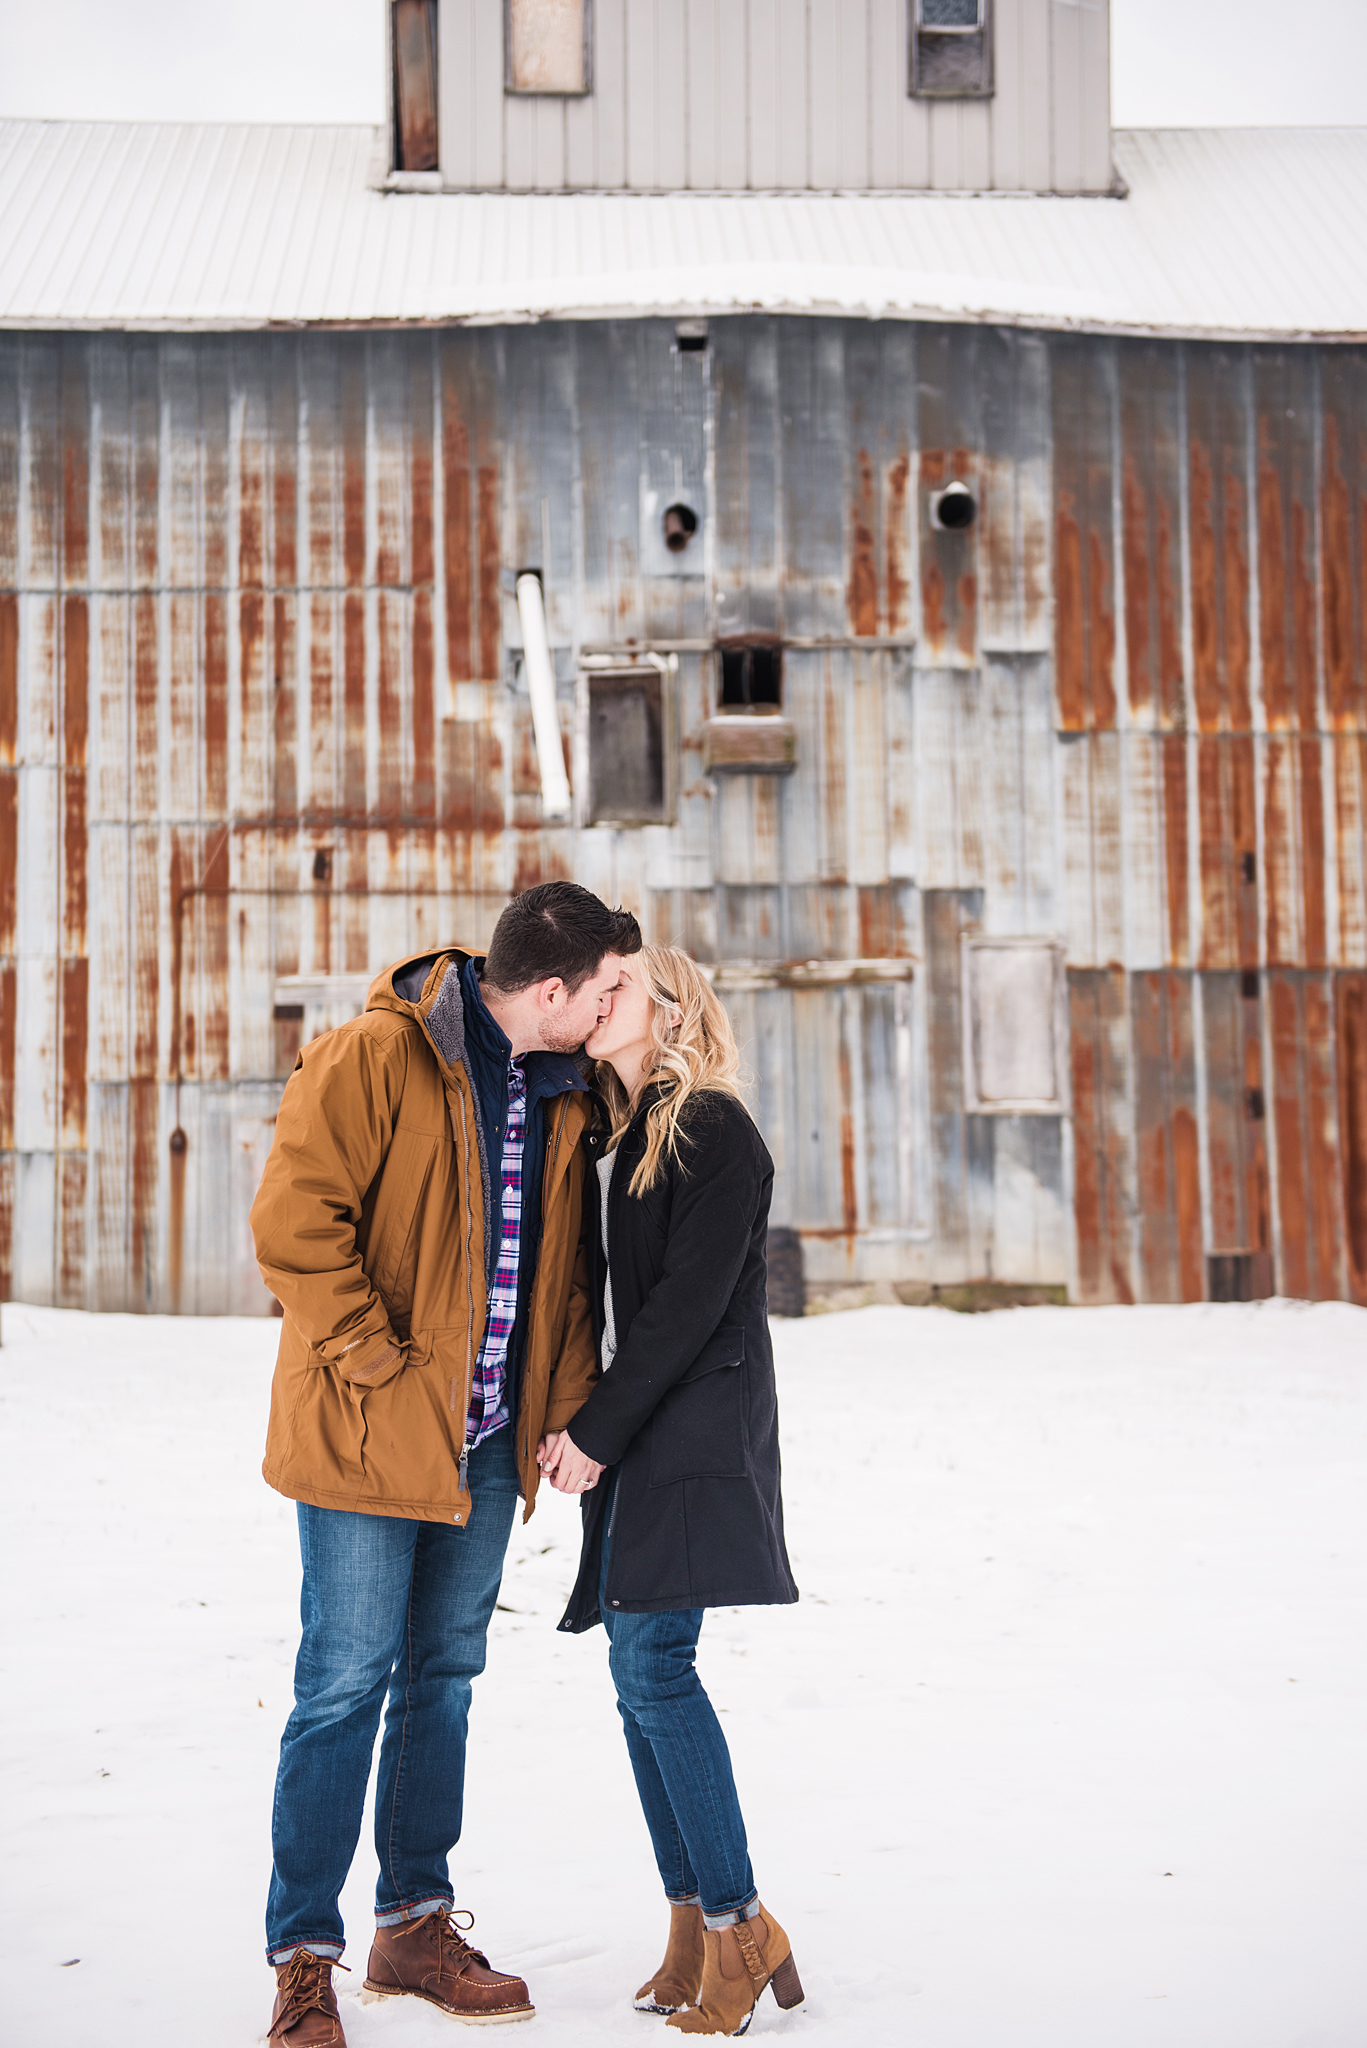 Schoen_Place_Rochester_Engagement_Session_JILL_STUDIO_Rochester_NY_Photographer_DSC_1127.jpg